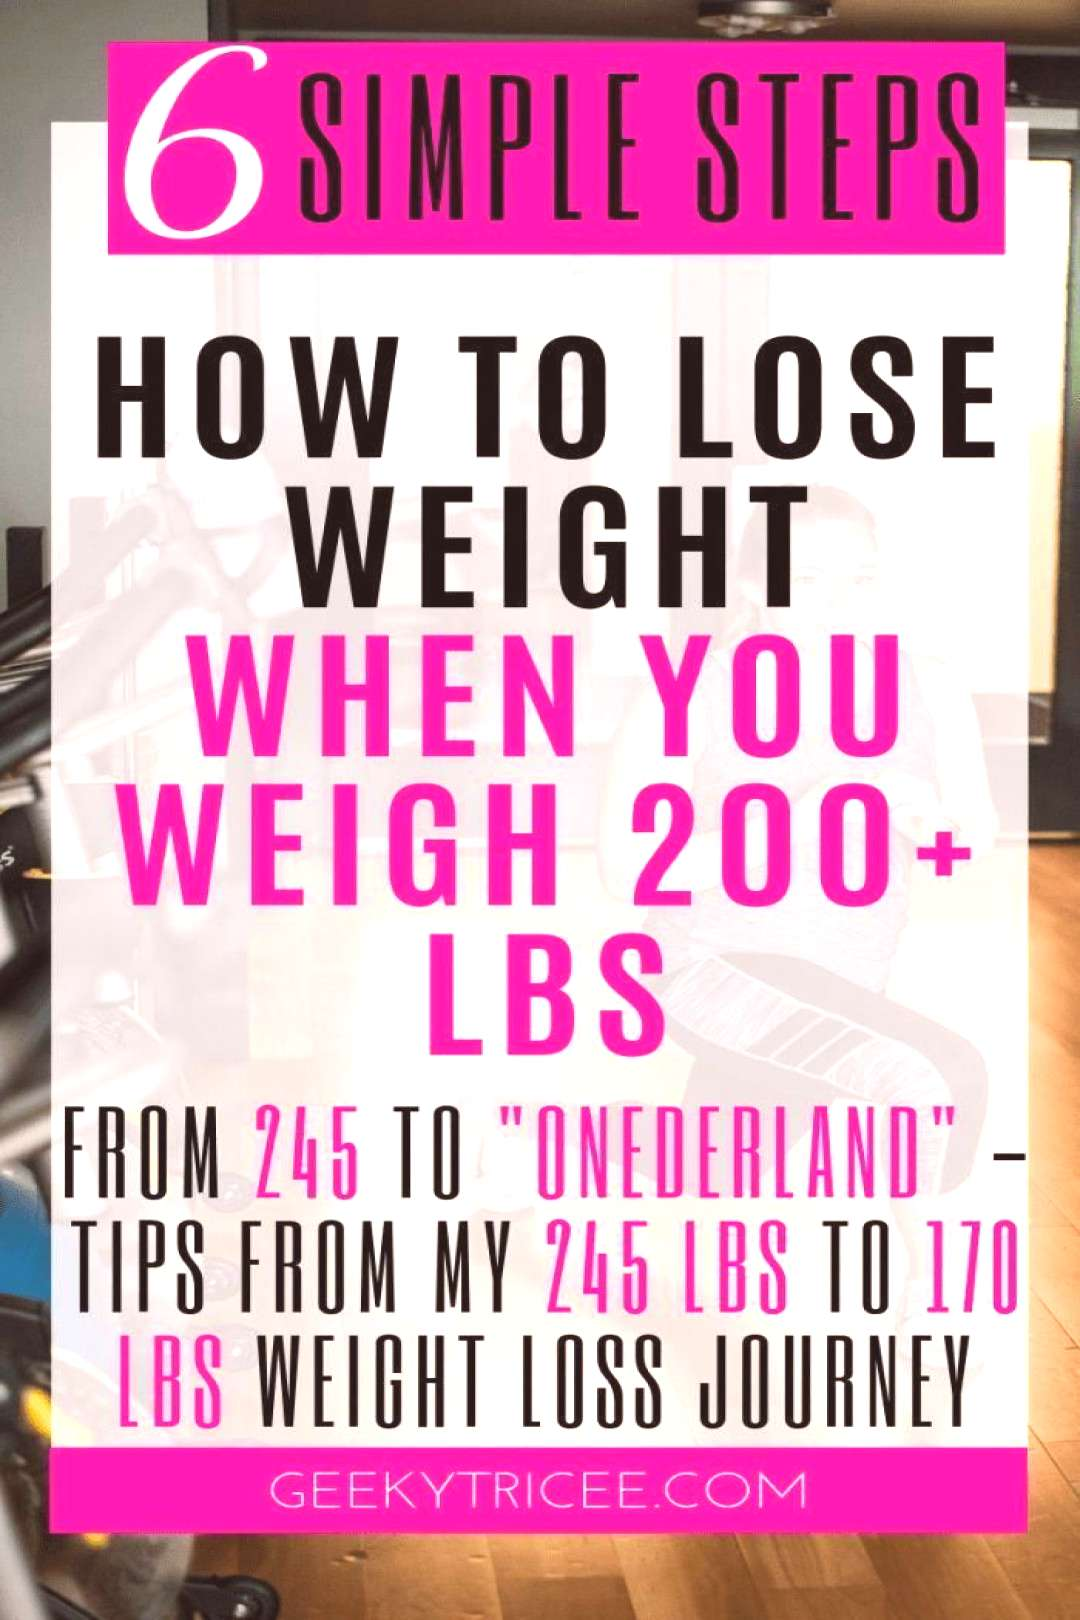 How to simply lose weight if you weigh 200 lbs or more – GeekyTricee